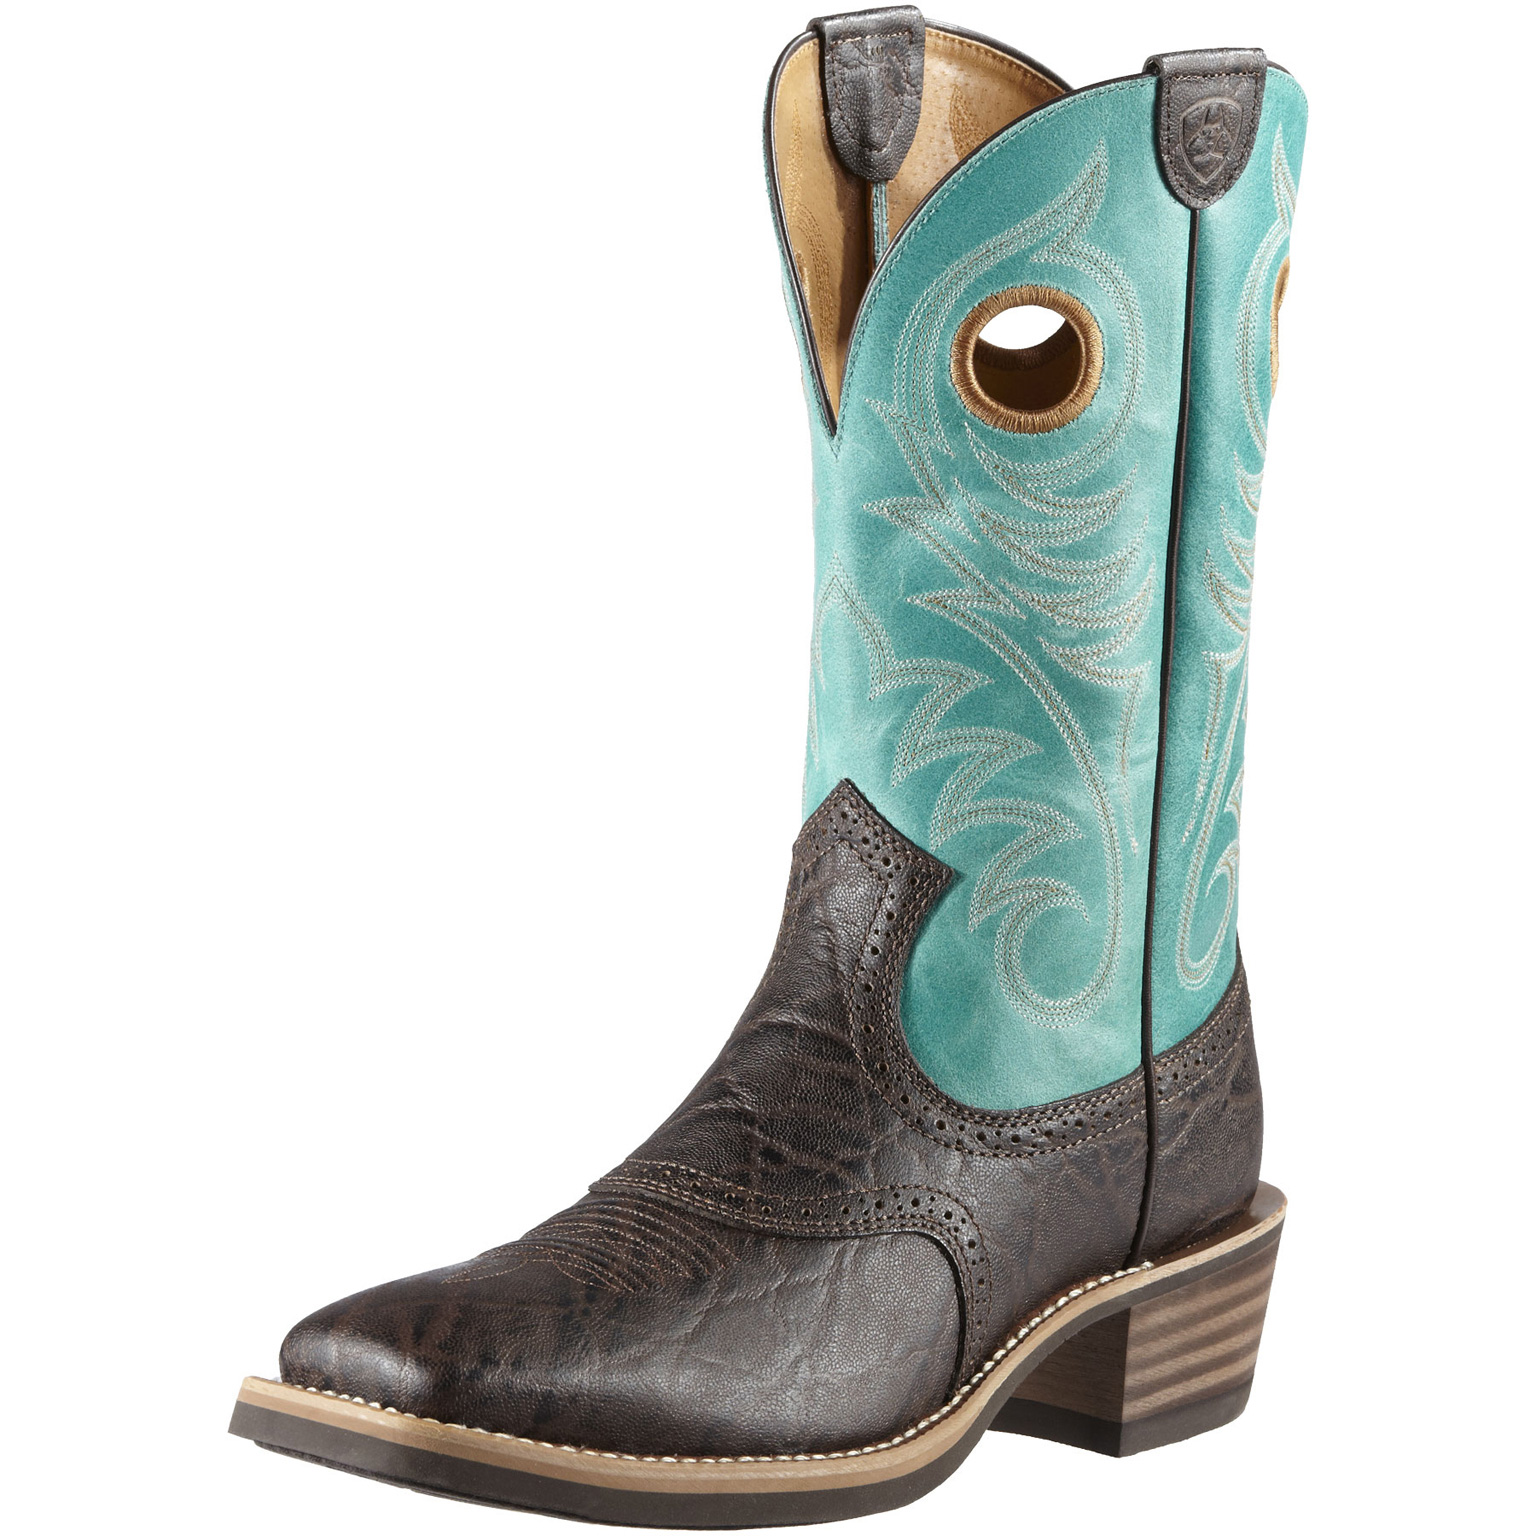 Ariat Boot Dealers k244AfTz